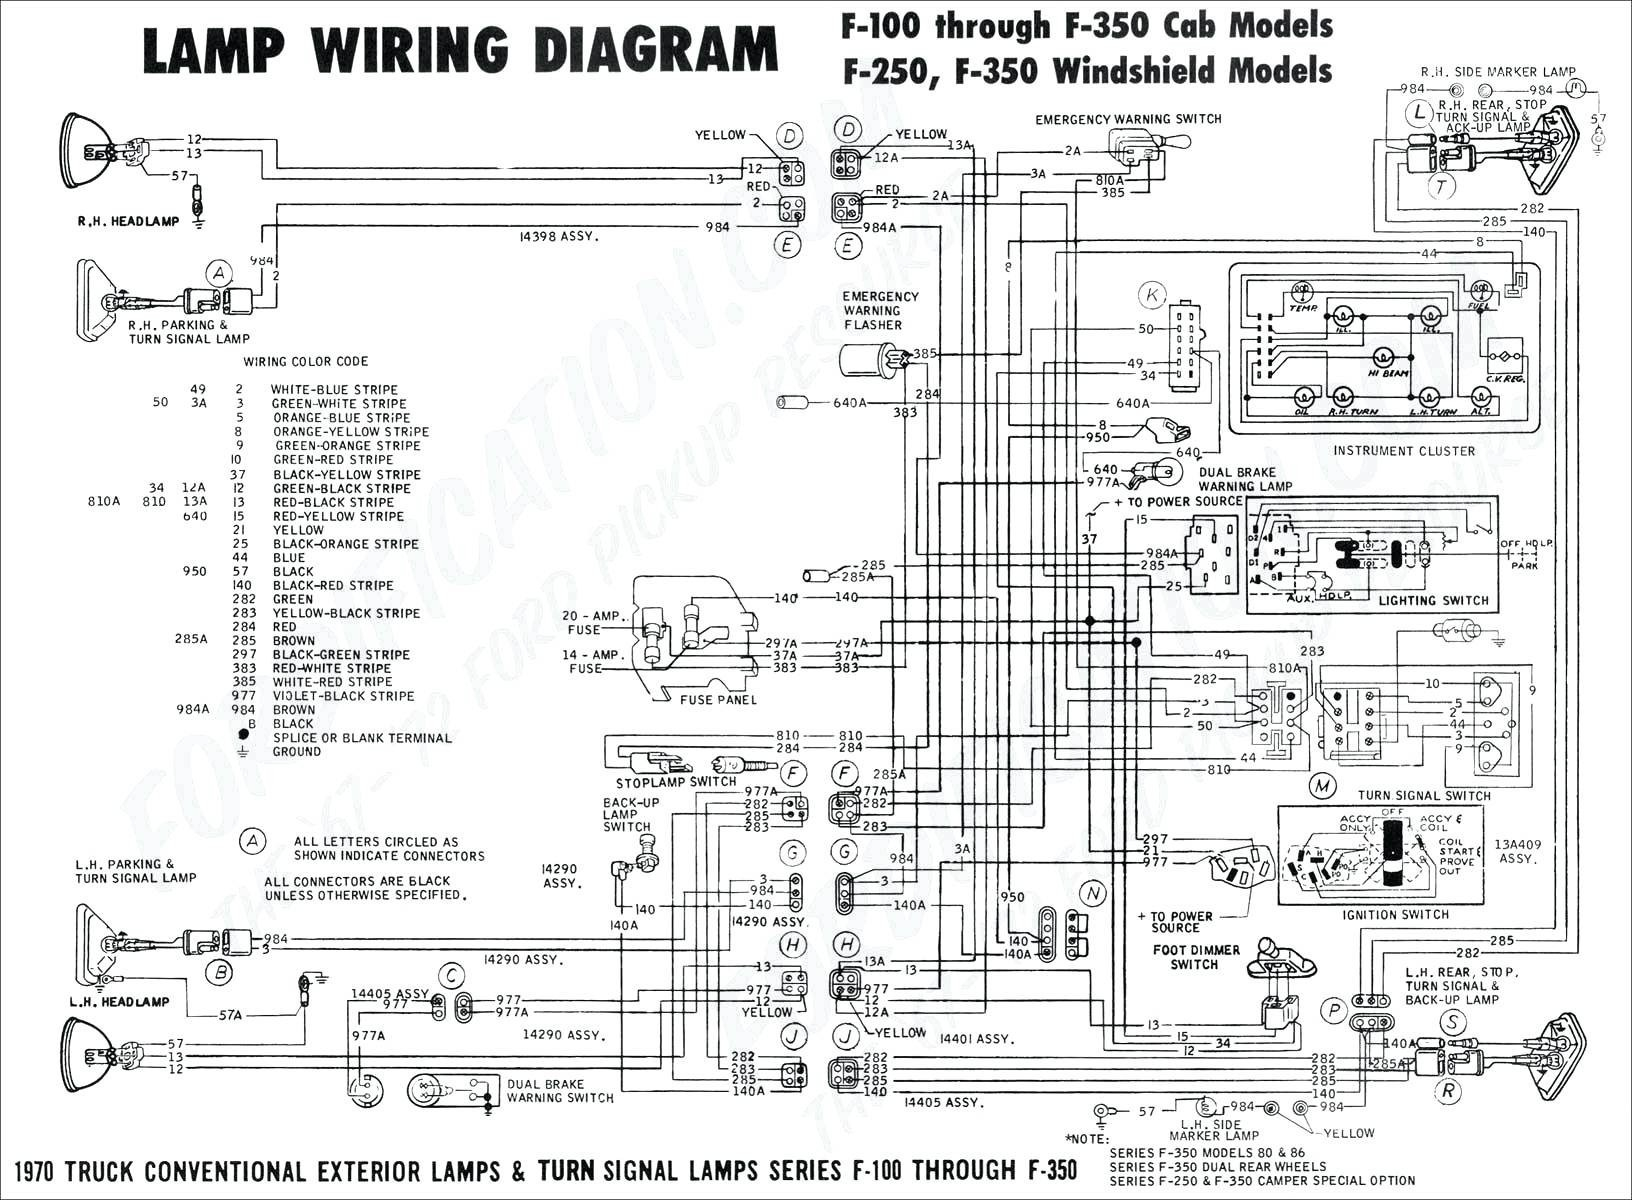 2005 jeep grand cherokee trailer wiring diagram Collection-2005 Jeep Grand Cherokee Trailer Wiring Diagram Valid Jeep Trailer Wiring Diagram Refrence F150 Trailer Wiring 4-s